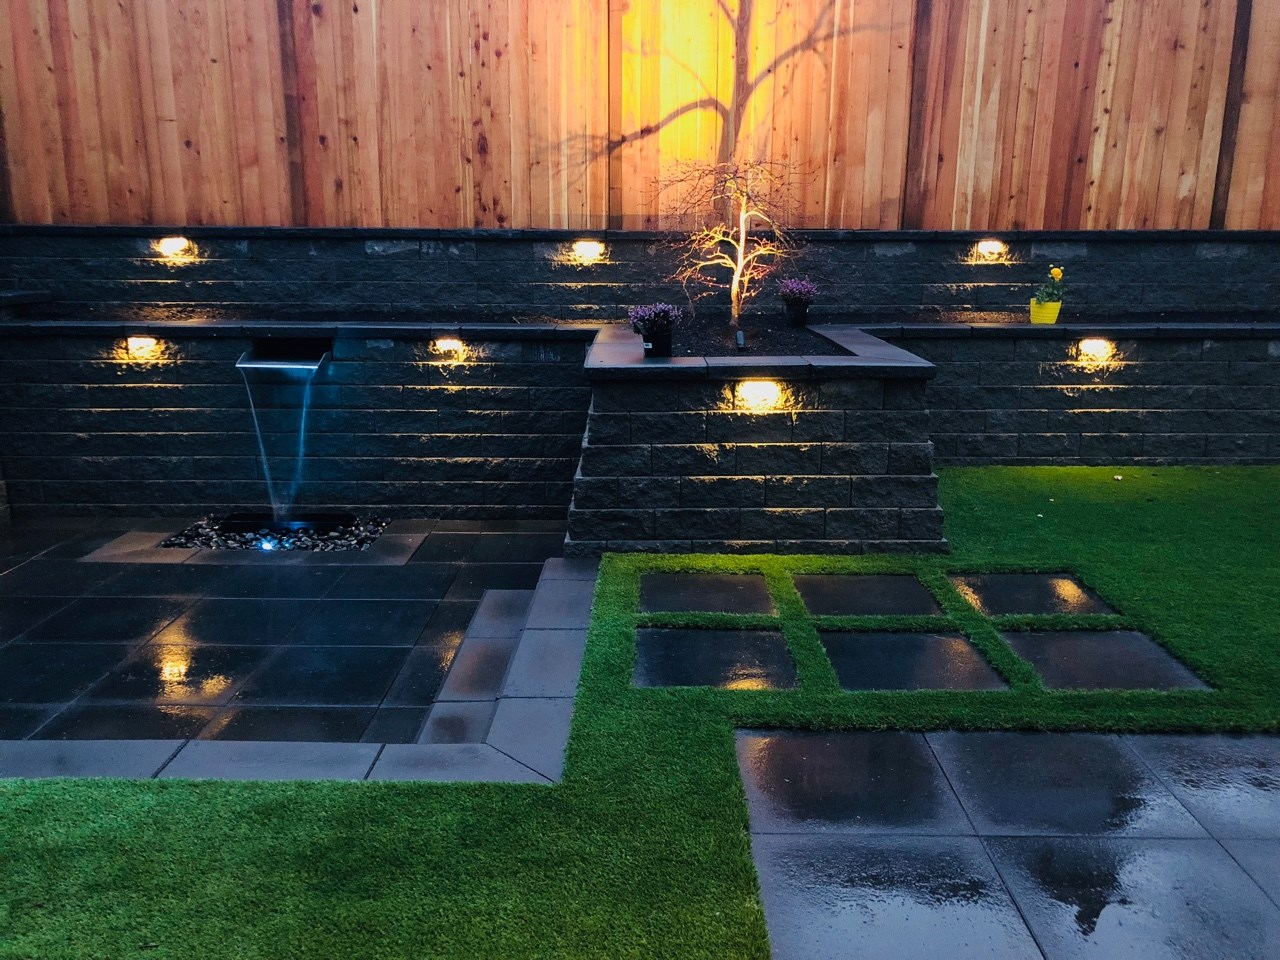 Retaining wall, water feature, lights